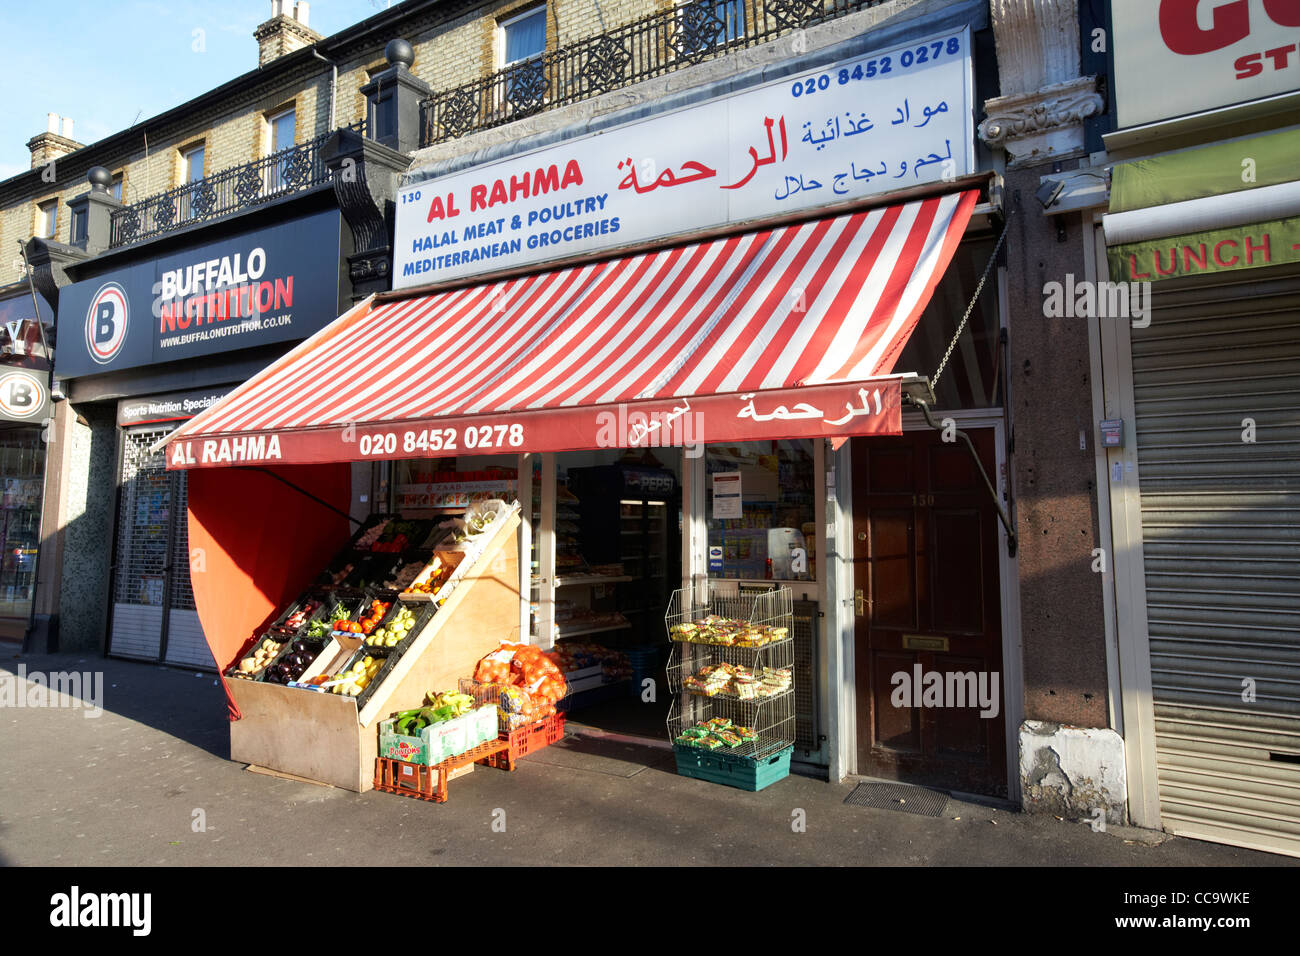 halal meat and poultry butchers and mediterranean grocery store cricklewood north london england uk - Stock Image